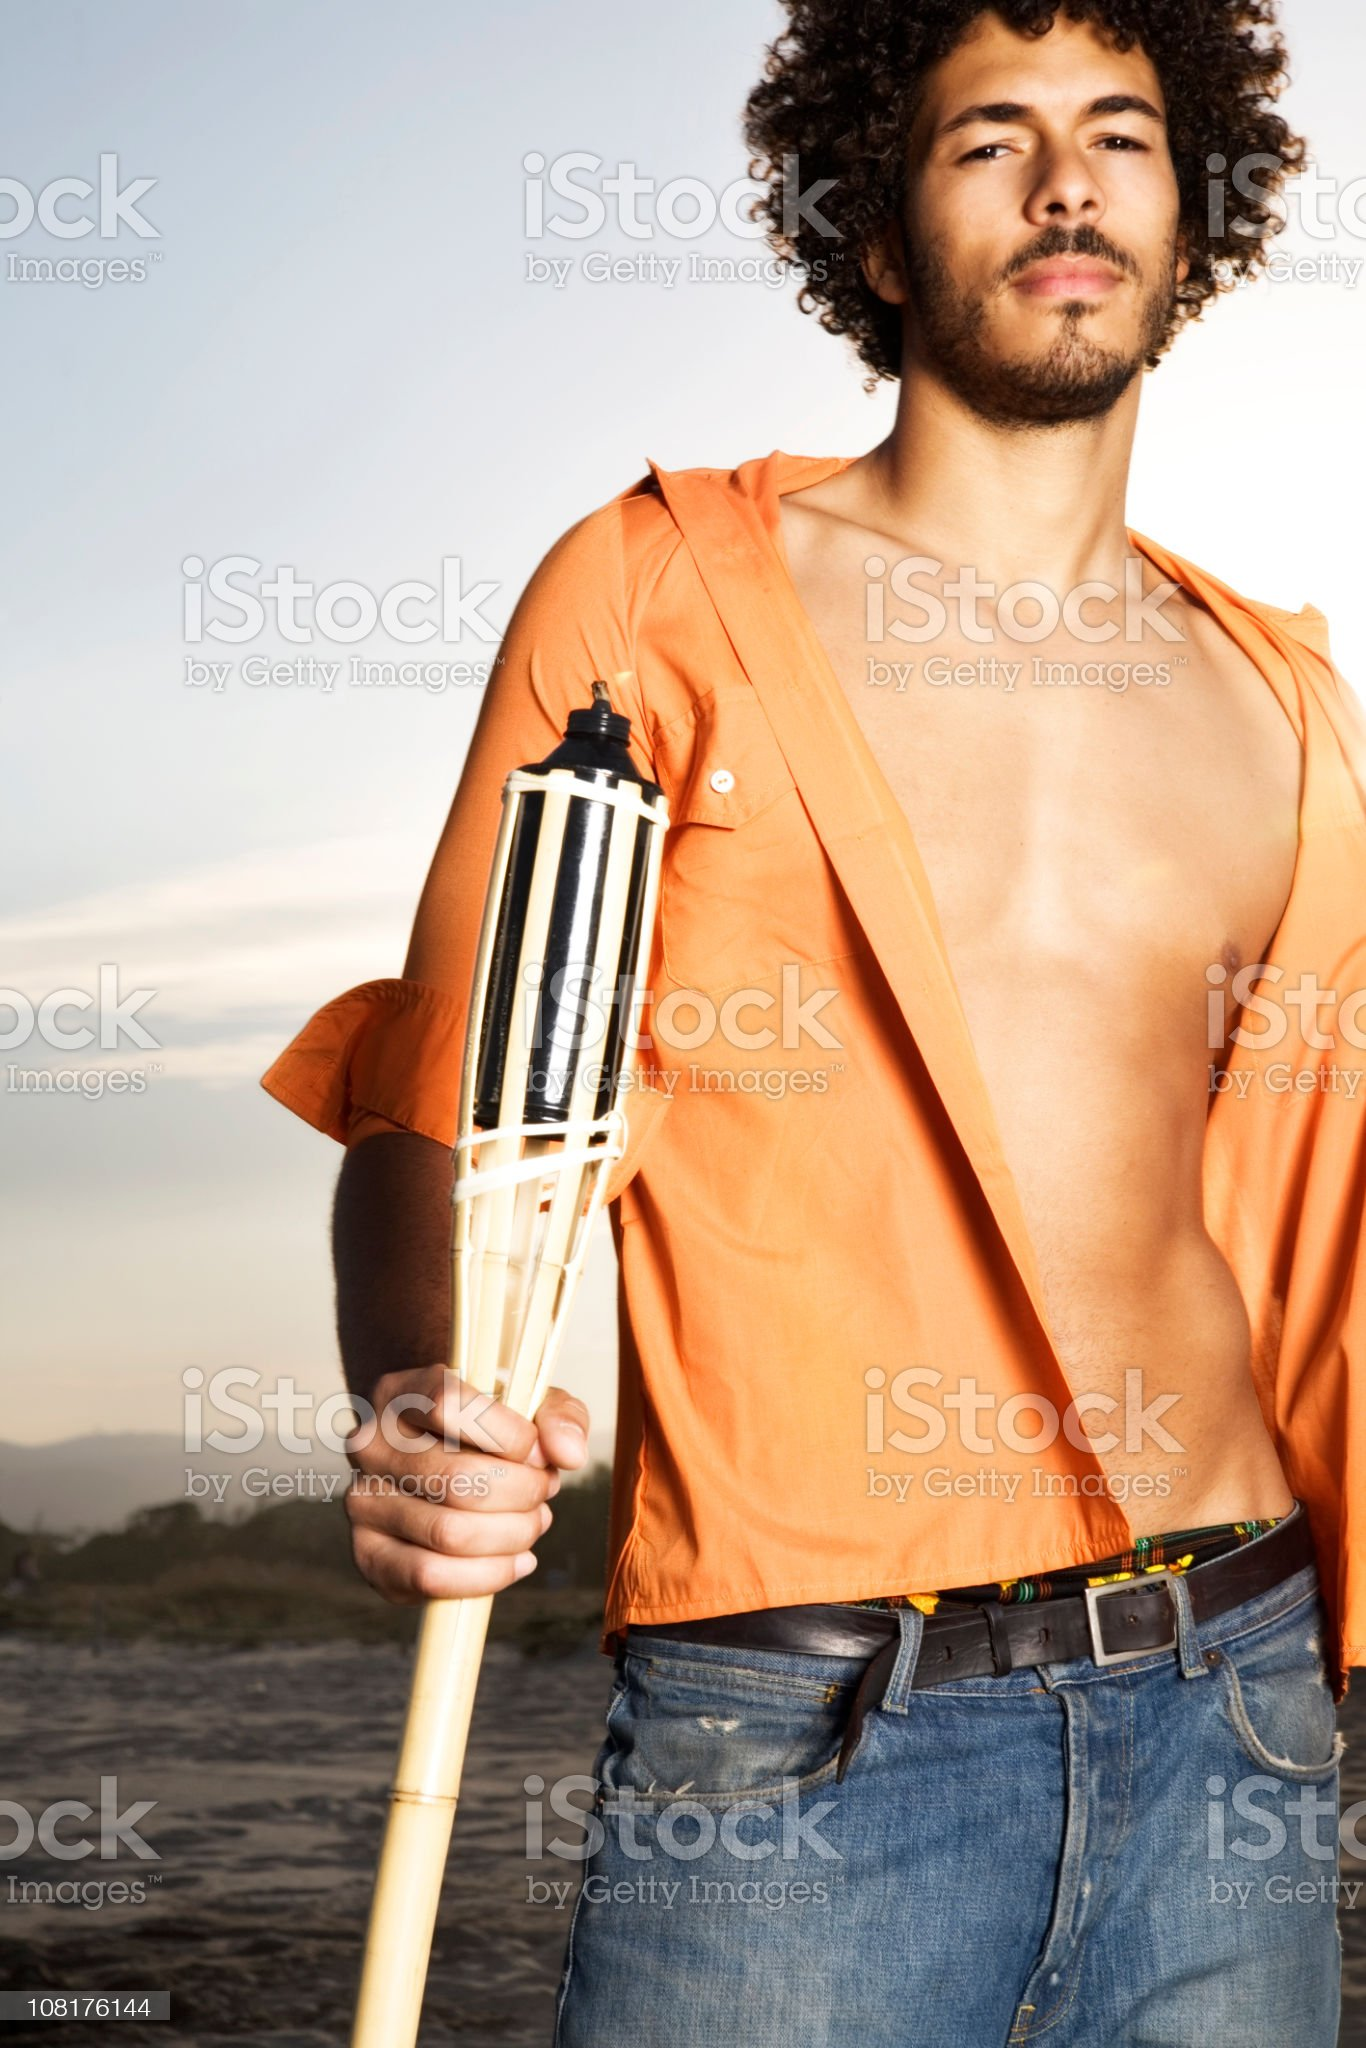 Young Man With Open Shirt Holding Tiki Torch at Beach royalty-free stock photo